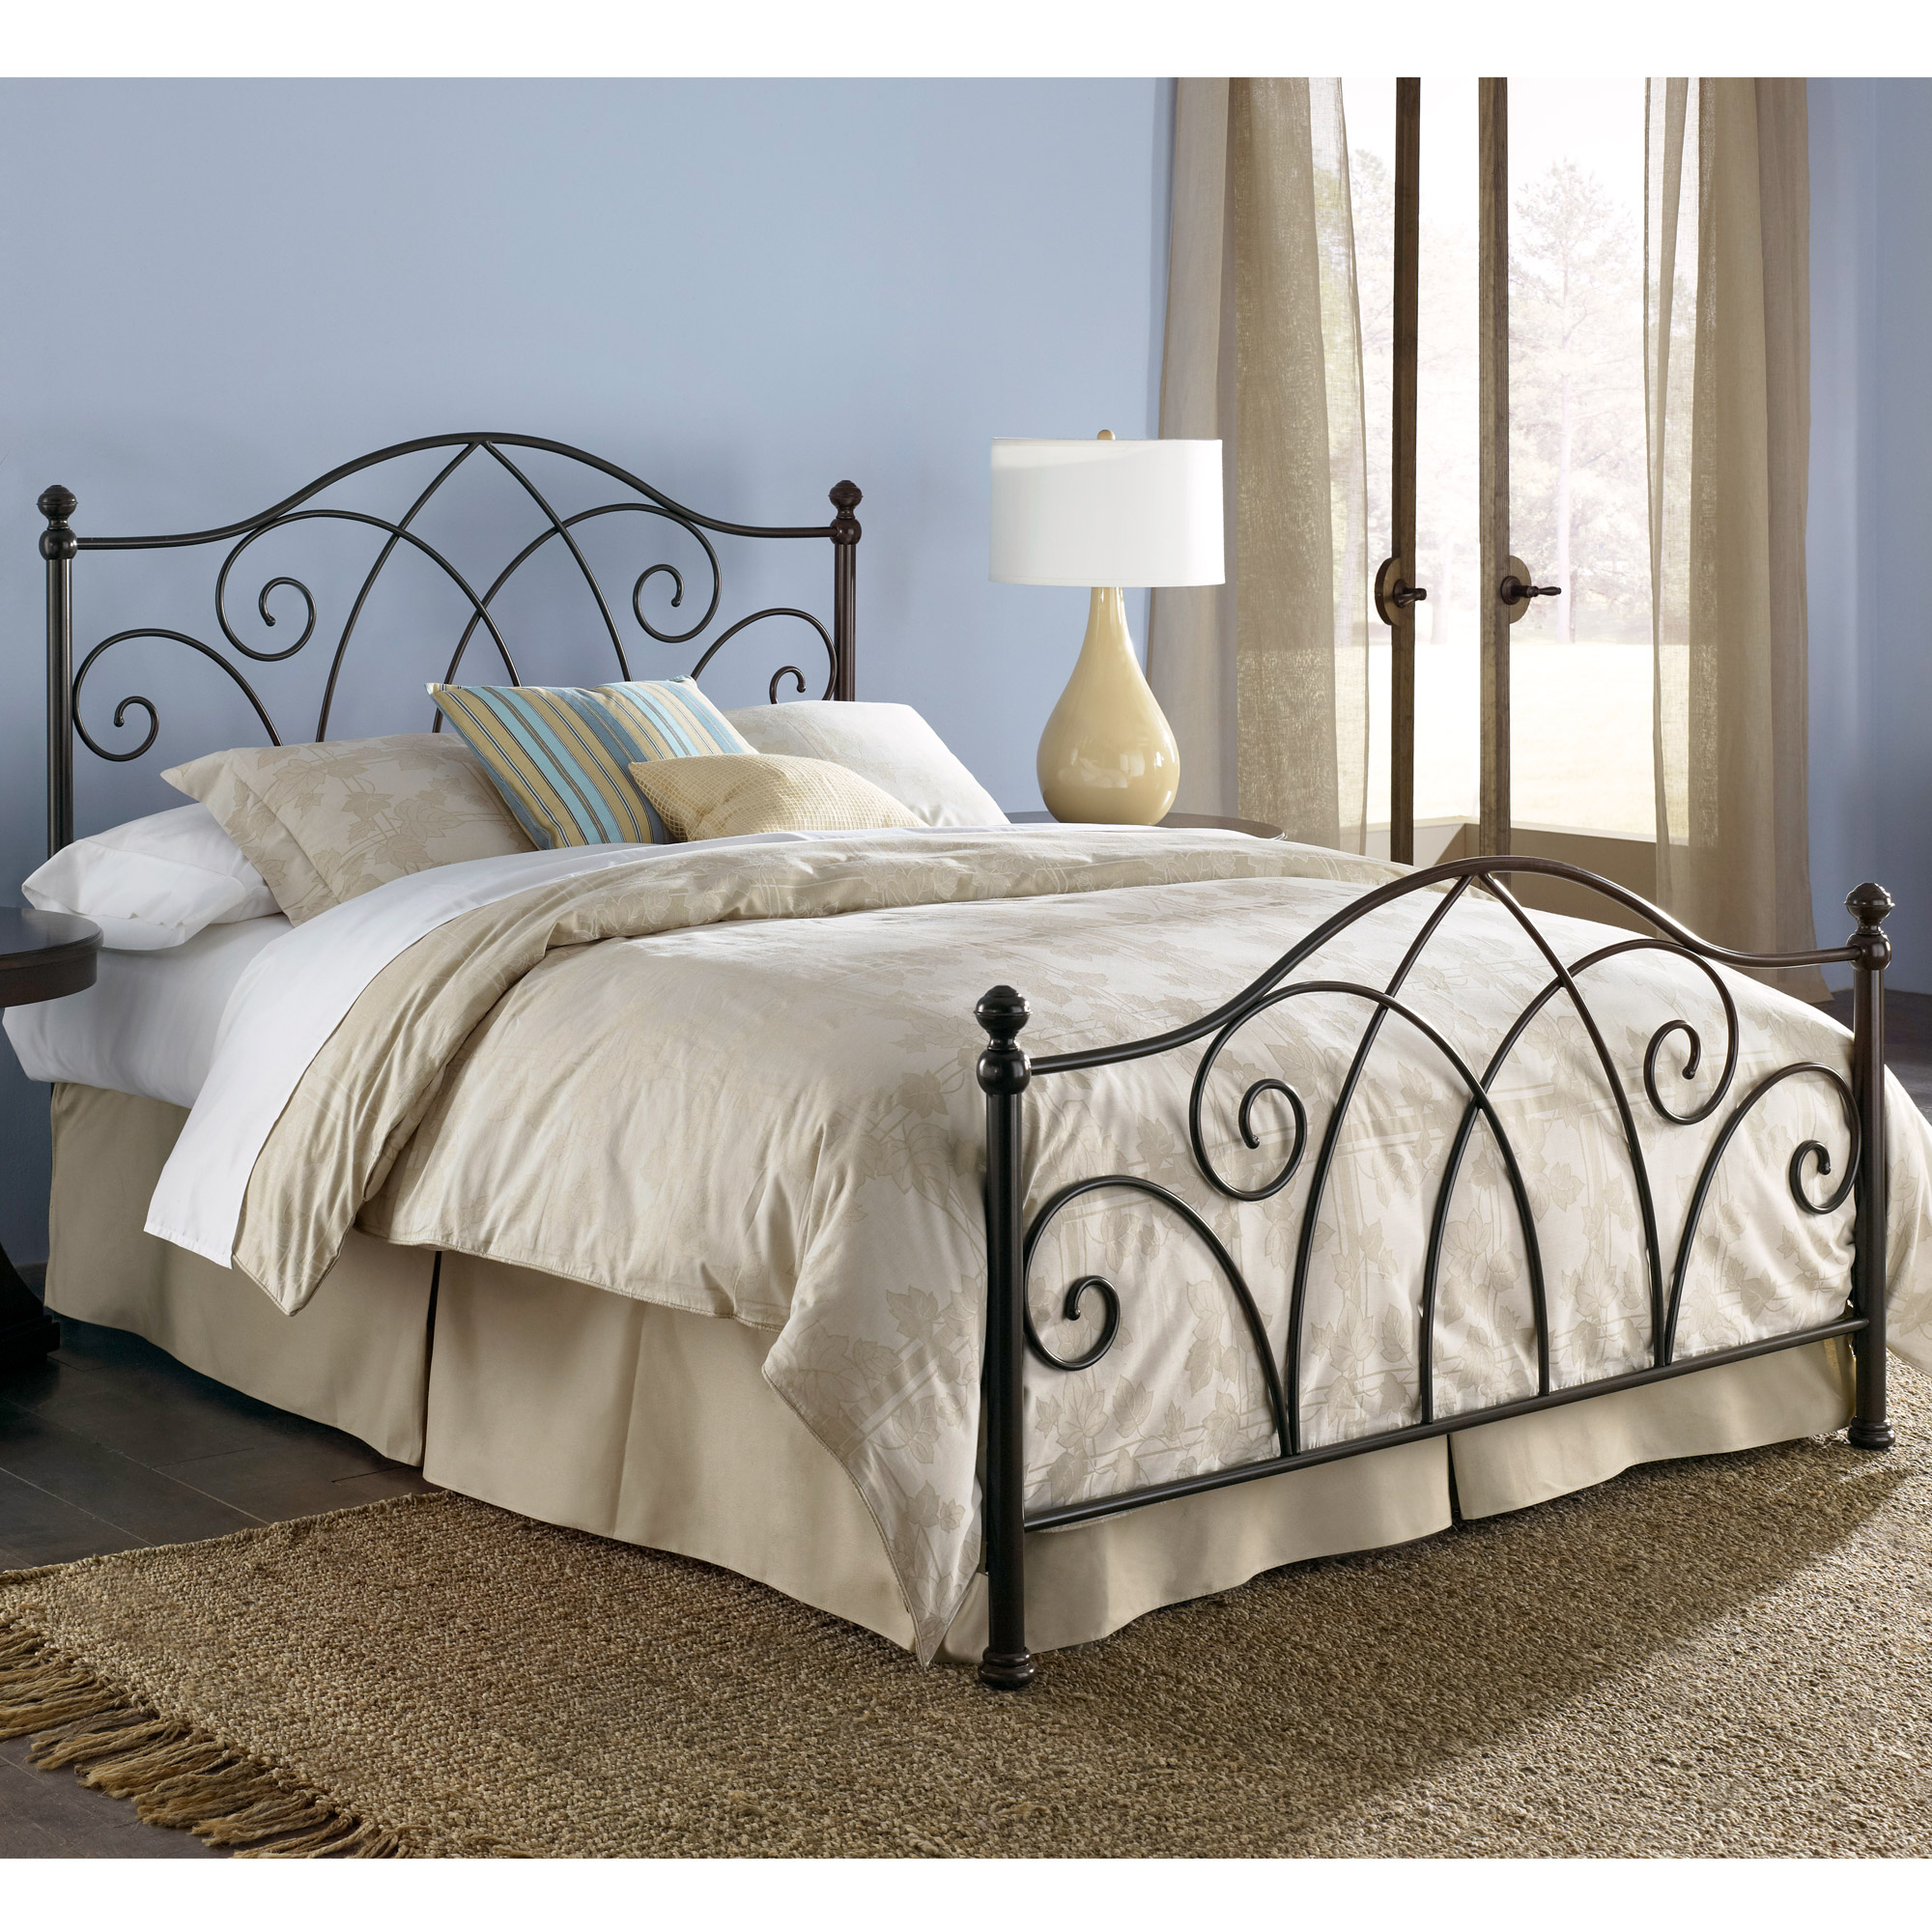 Deland iron headboard brown sparkle finish traditional design for Iron bedroom furniture